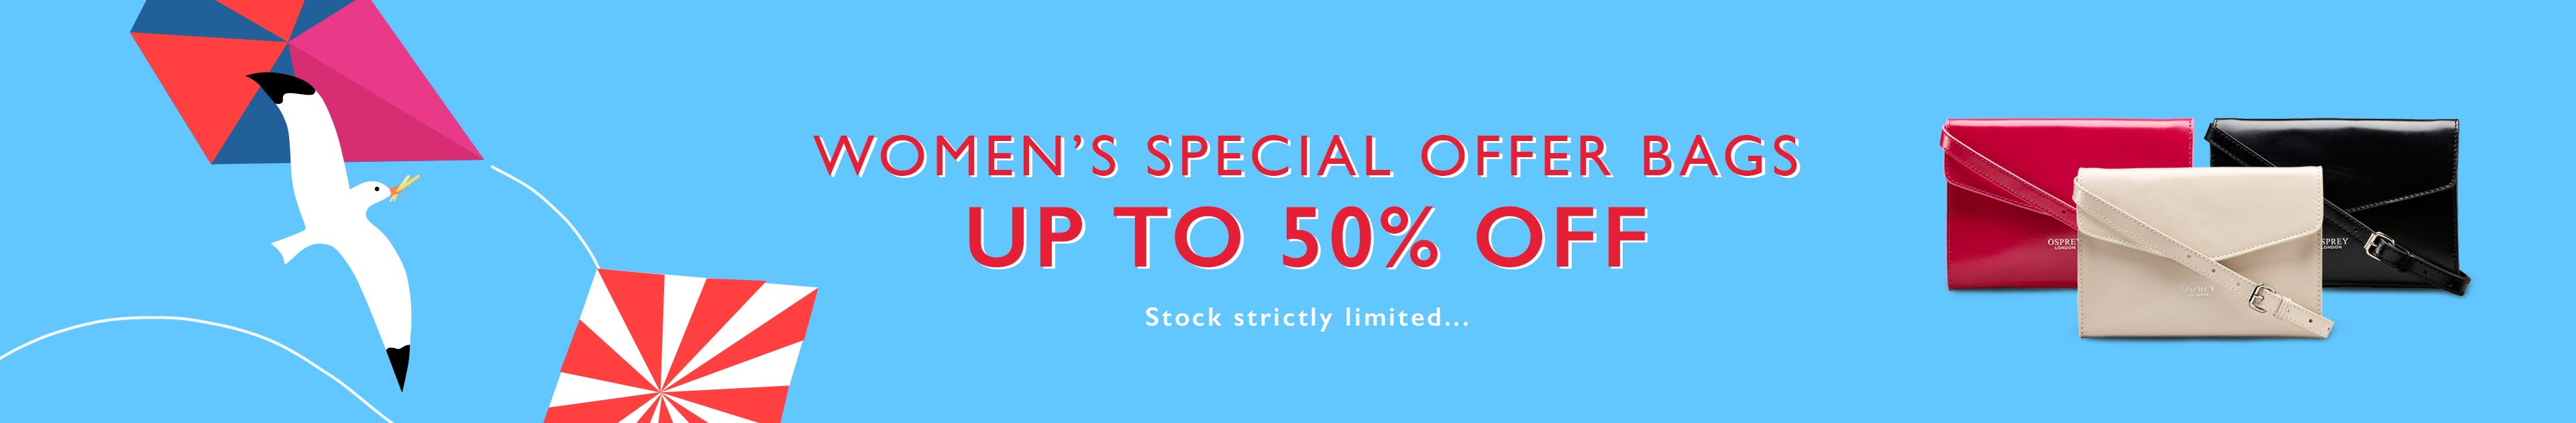 Women's Special Offer Bags